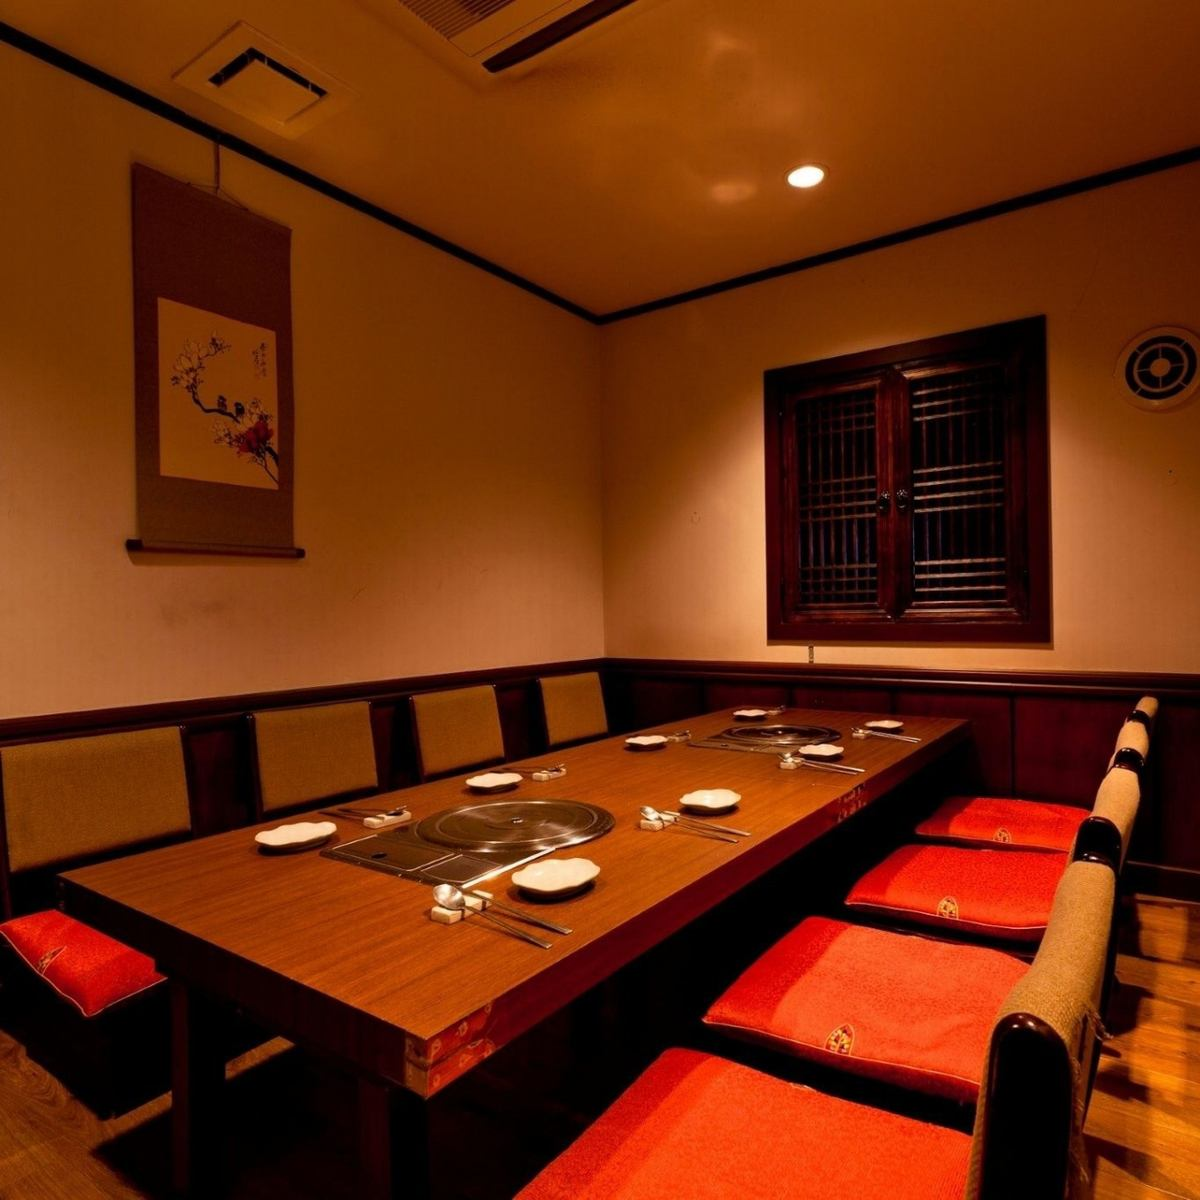 Space where you can forget the hustle and bustle of the city.We can guide you in all the private seats.